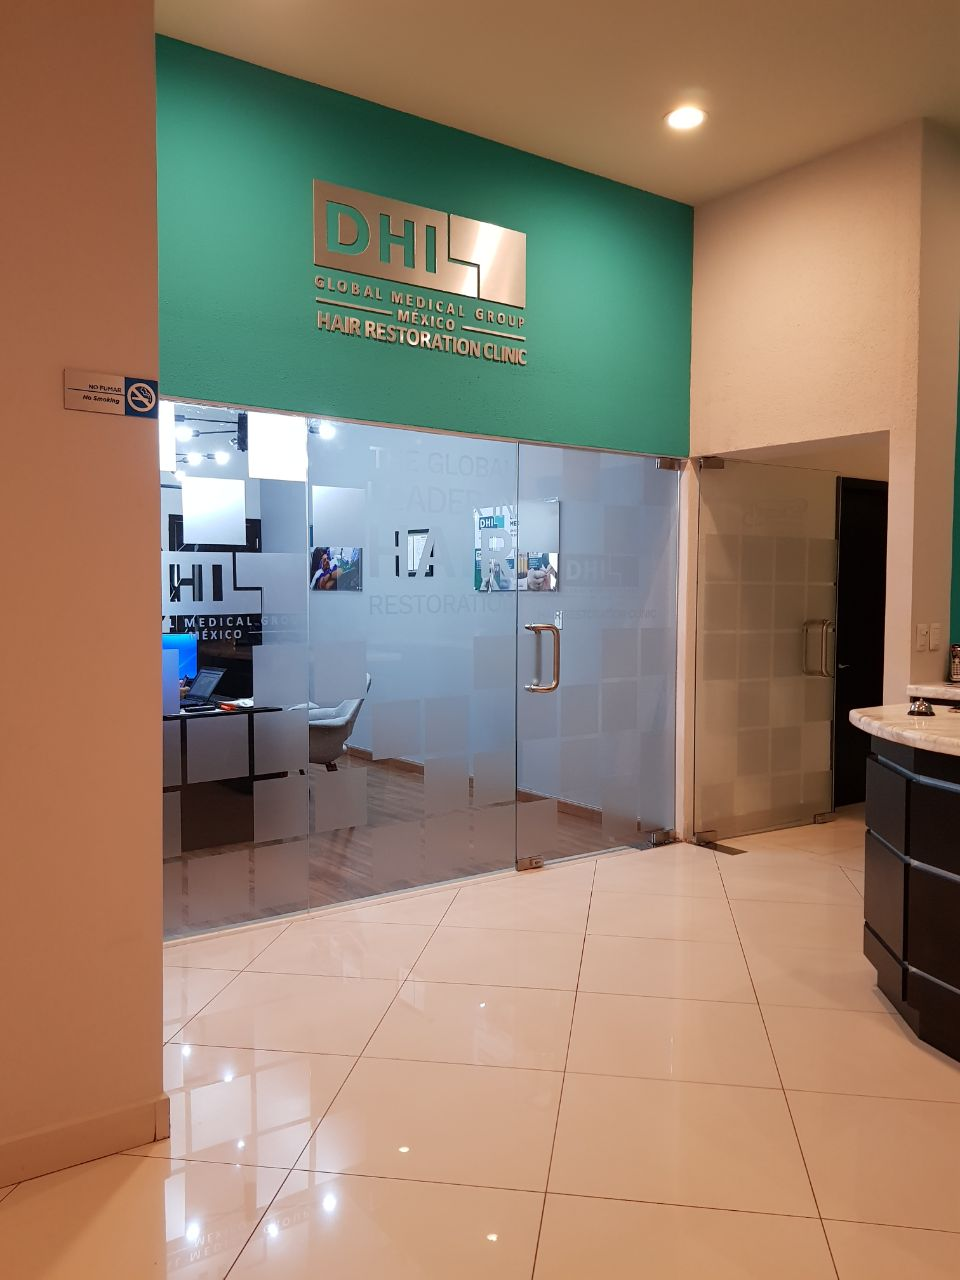 DHI Global Medical Group